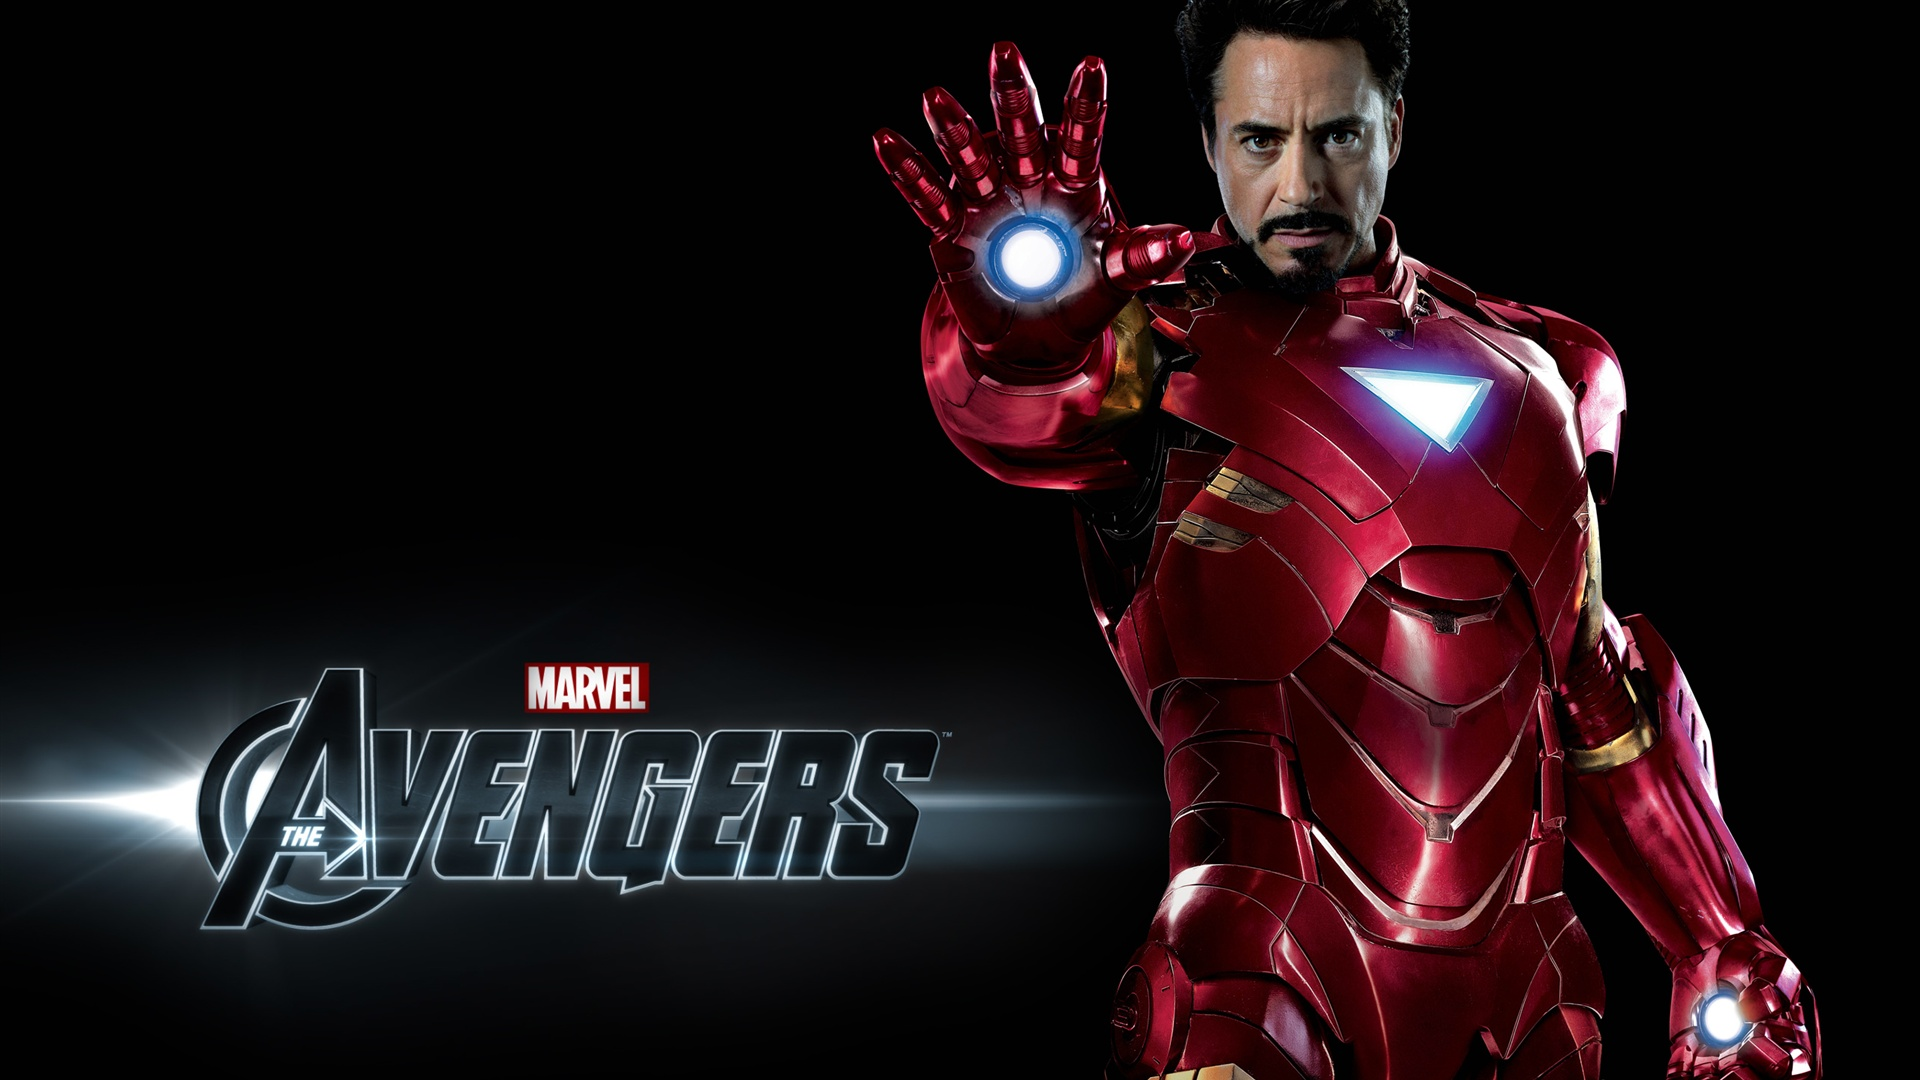 Iron Man In The Avengers 750x1334 Iphone 8 7 6 6s Wallpaper Background Picture Image